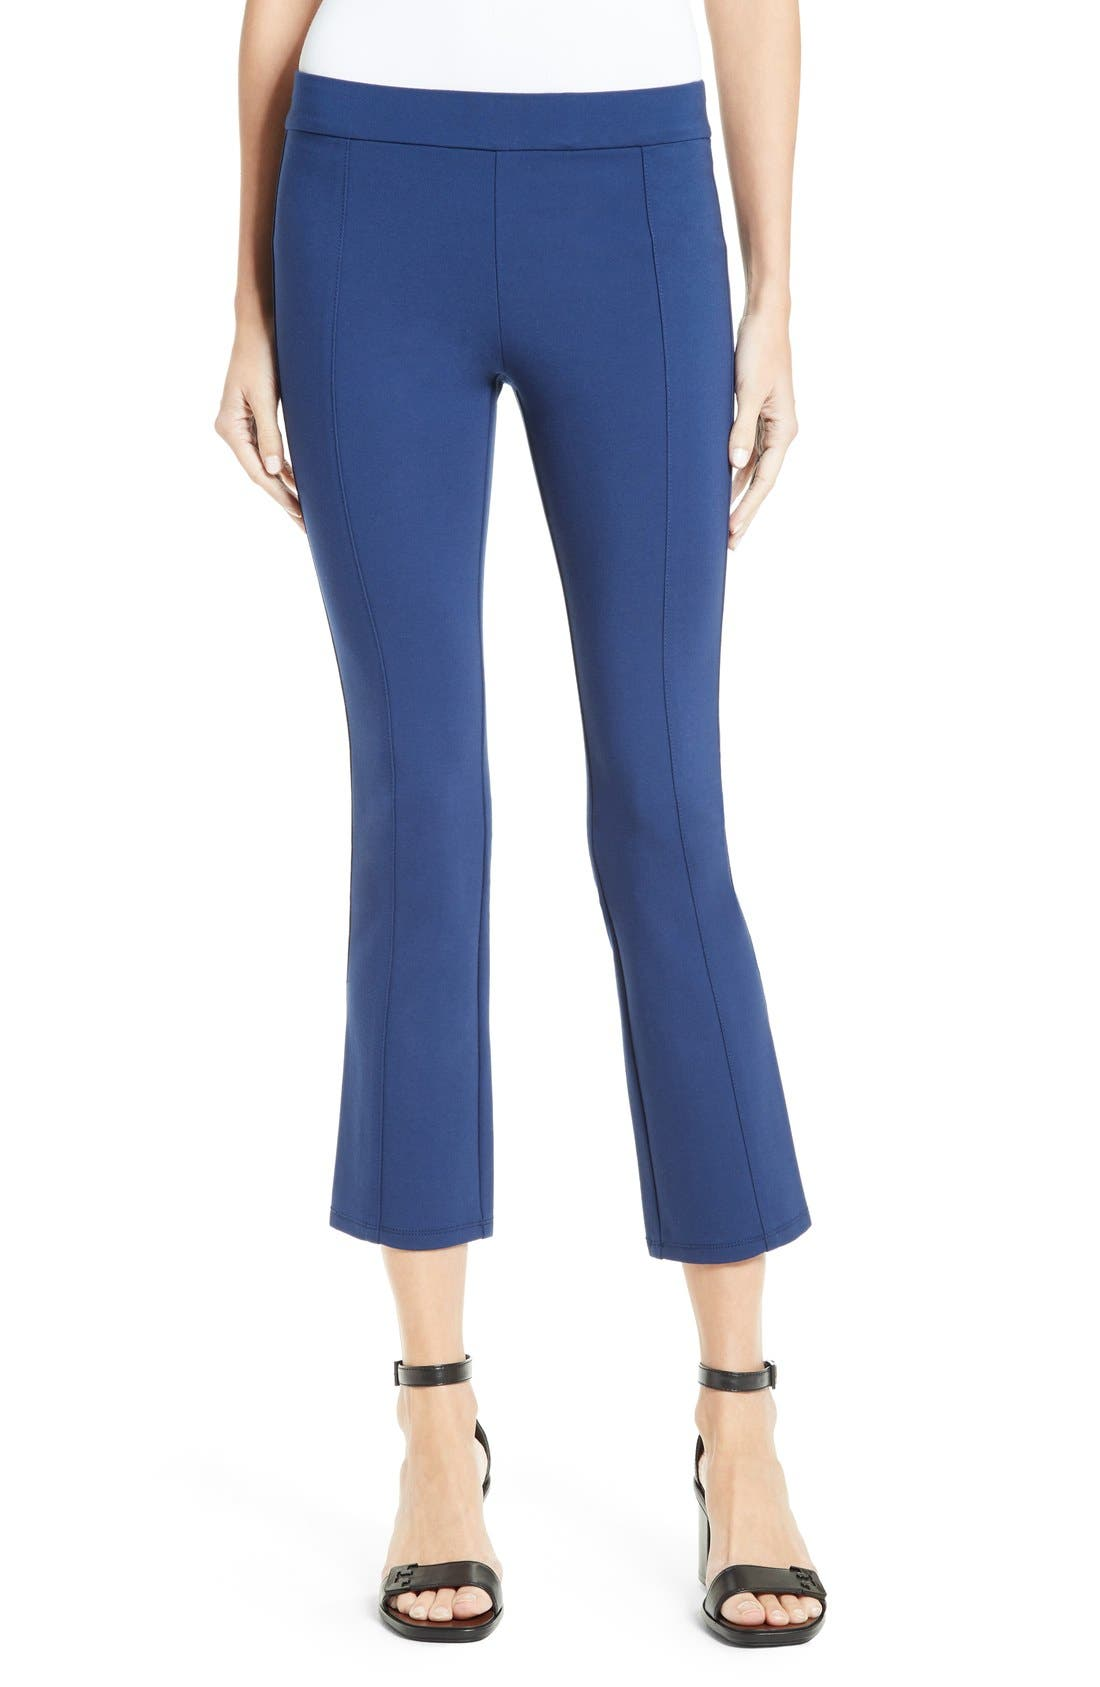 Tory Burch Stacey Stretch Knit Crop Flare Leg Pants